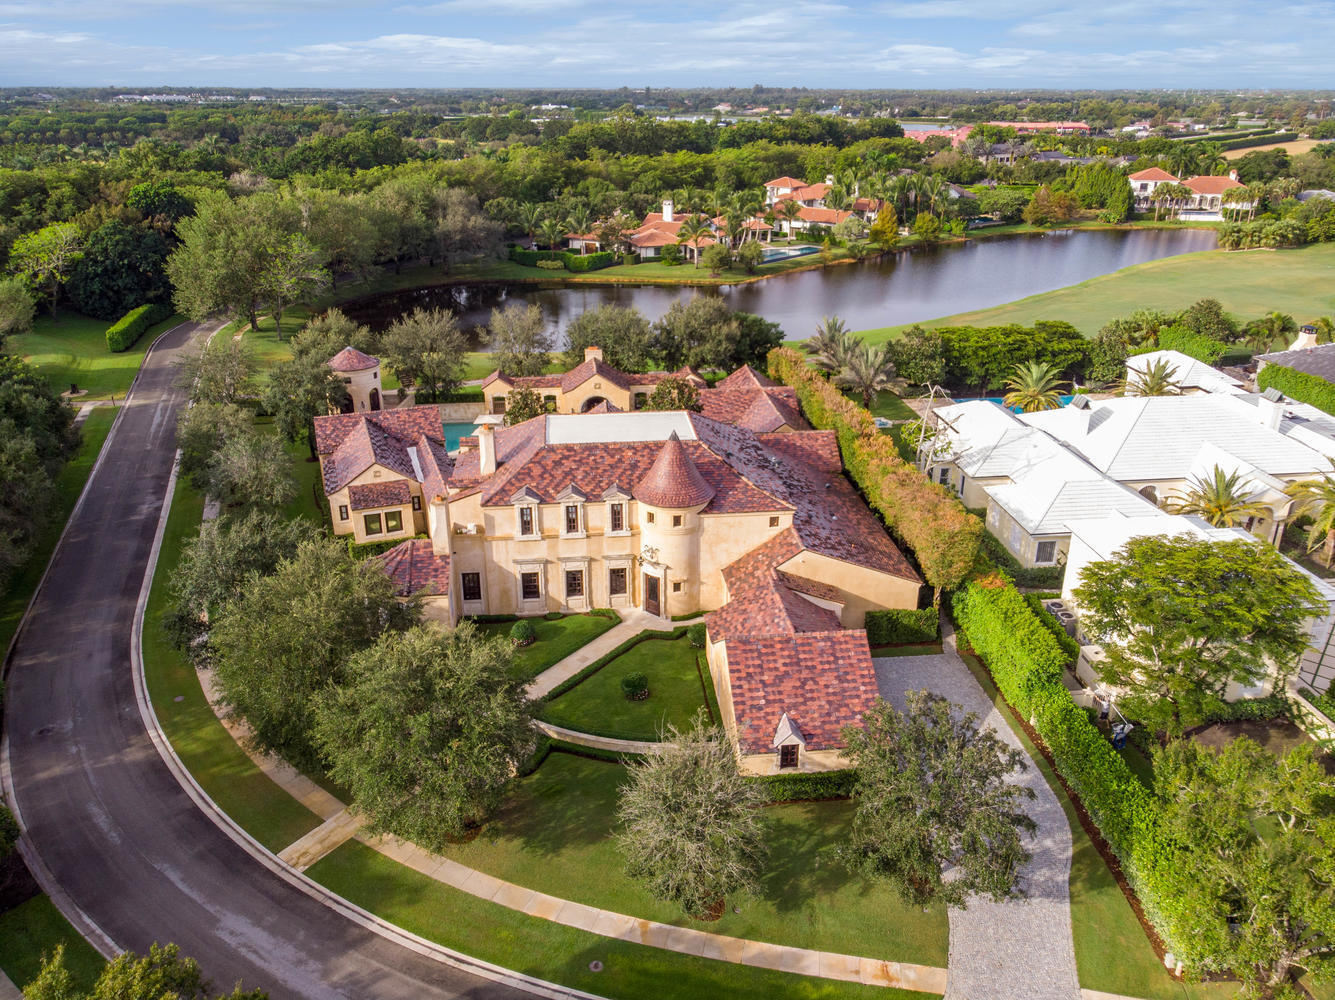 2930 Hurlingham Drive, Wellington, Florida 33414, 6 Bedrooms Bedrooms, ,6.1 BathroomsBathrooms,Single Family,For Sale,PALM BEACH POLO,Hurlingham,RX-10568488